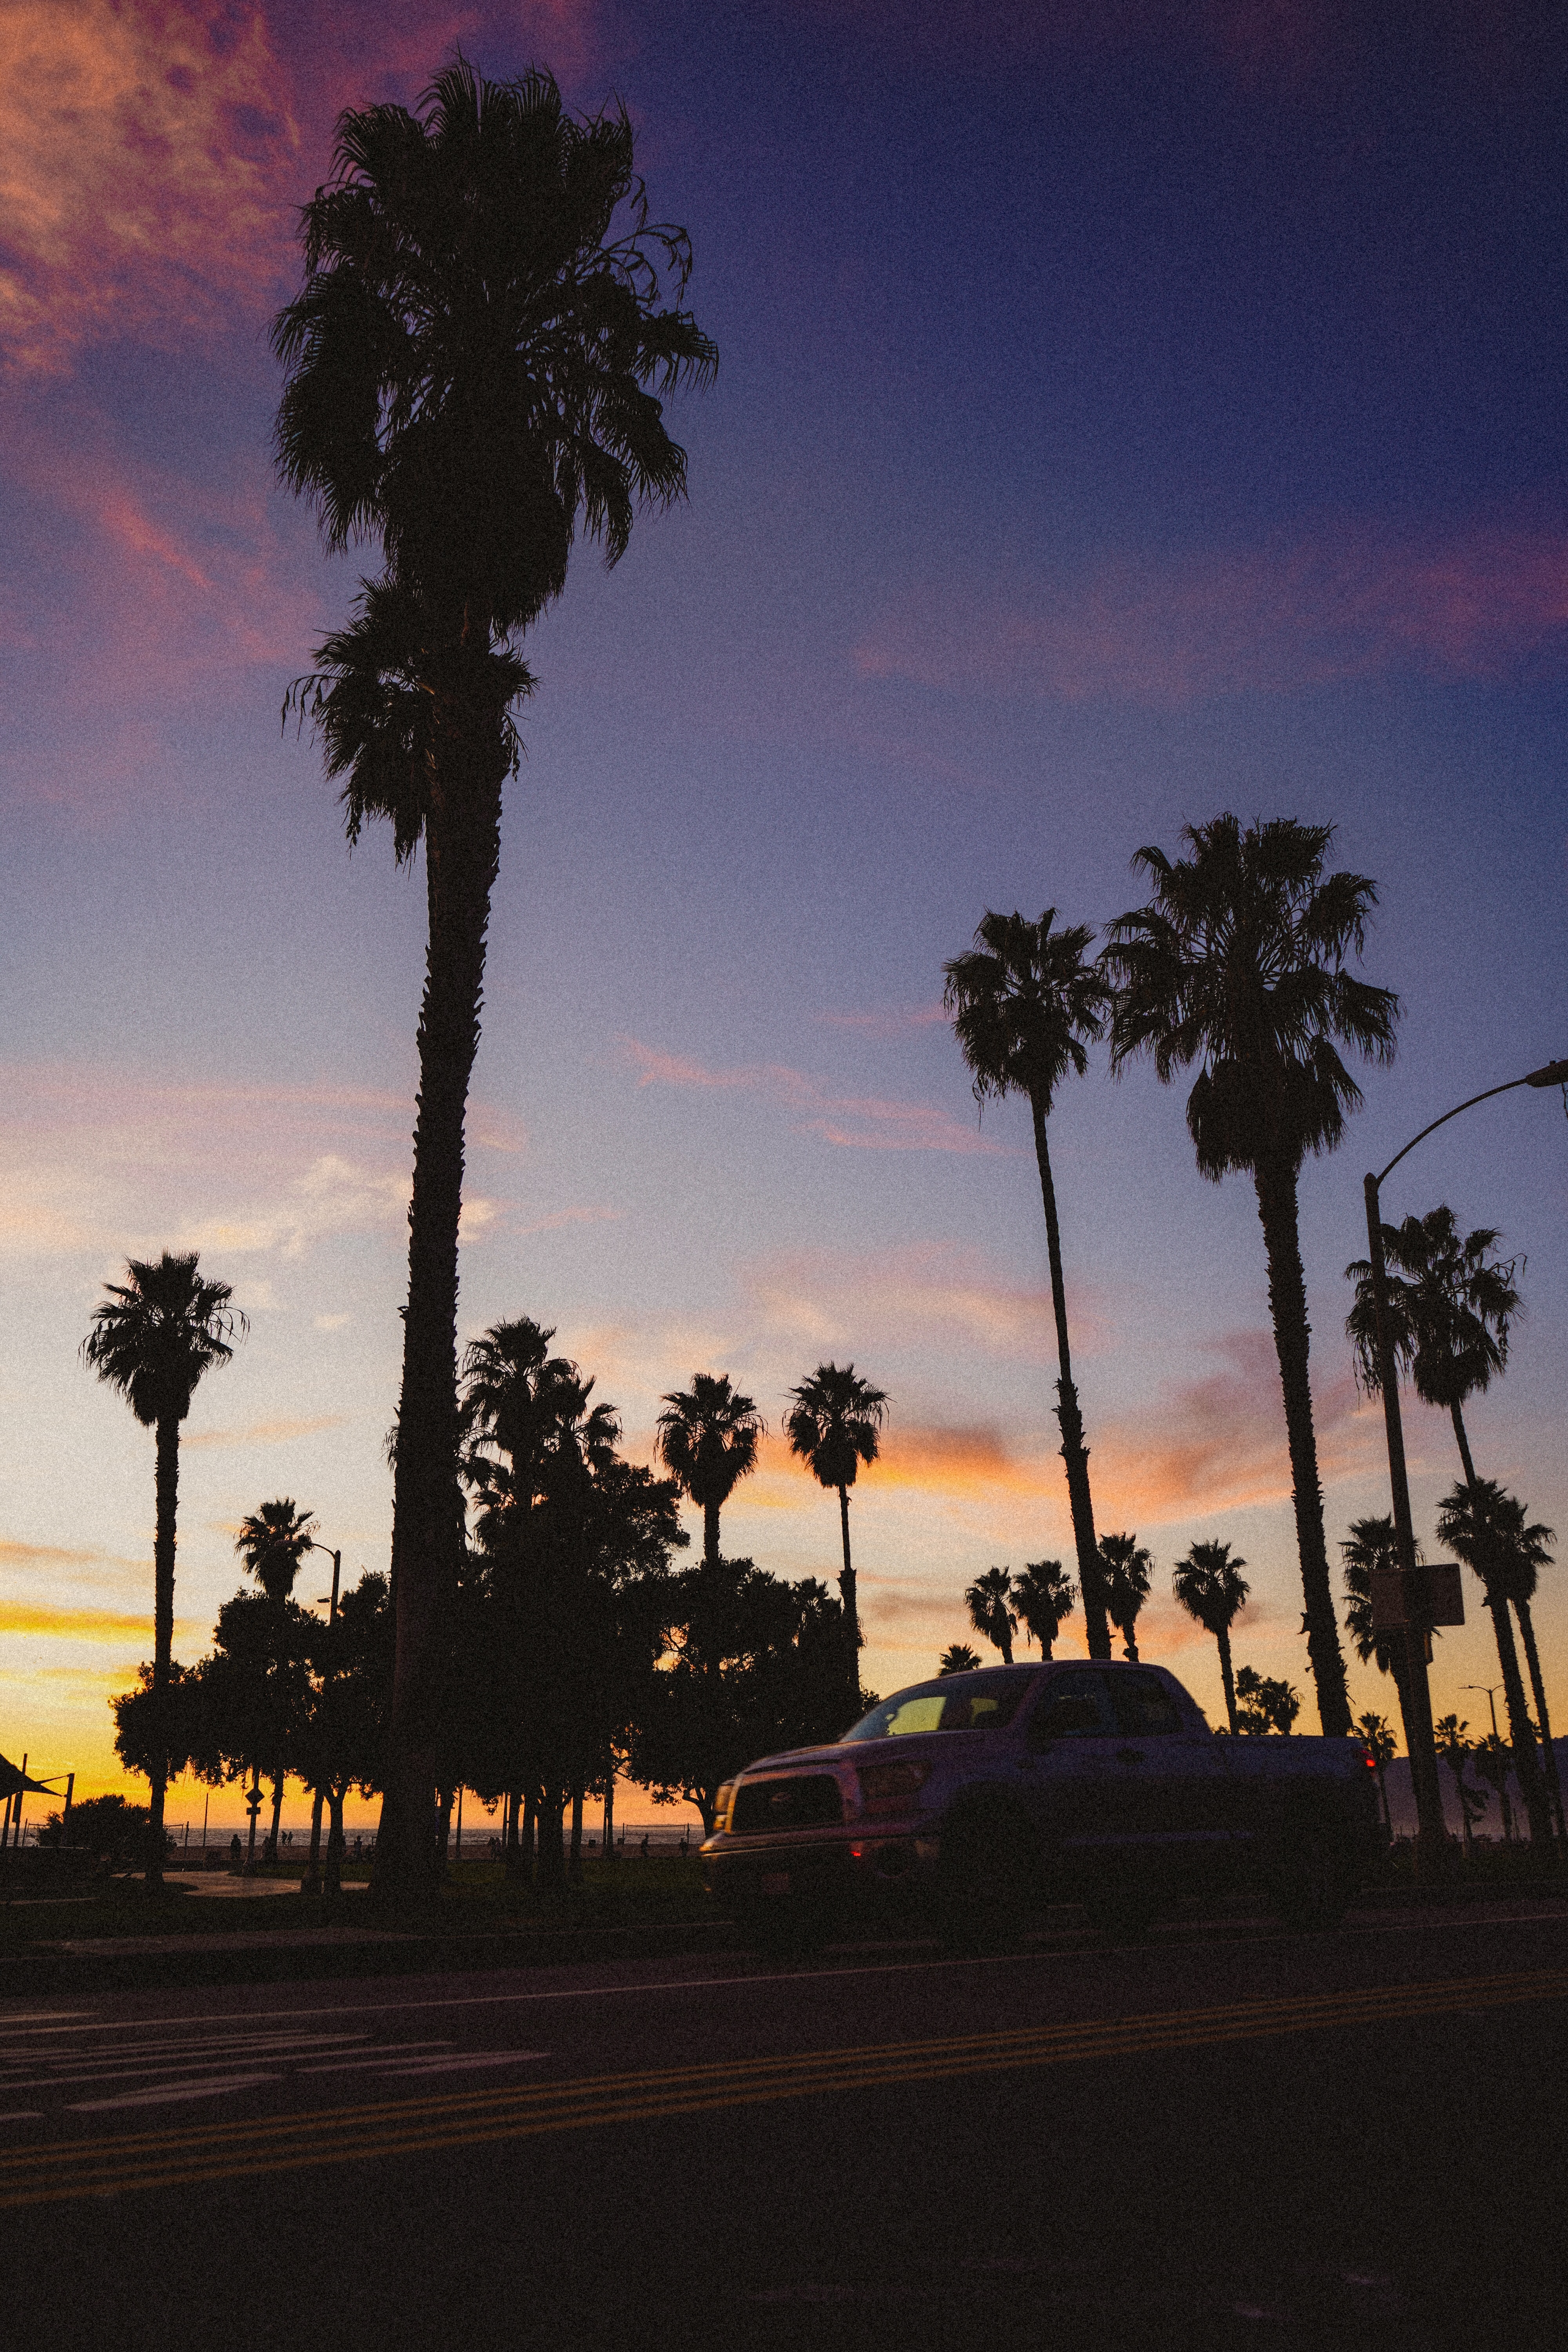 136353 download wallpaper Dark, Road, Car, Machine, Dusk, Twilight, Palms screensavers and pictures for free